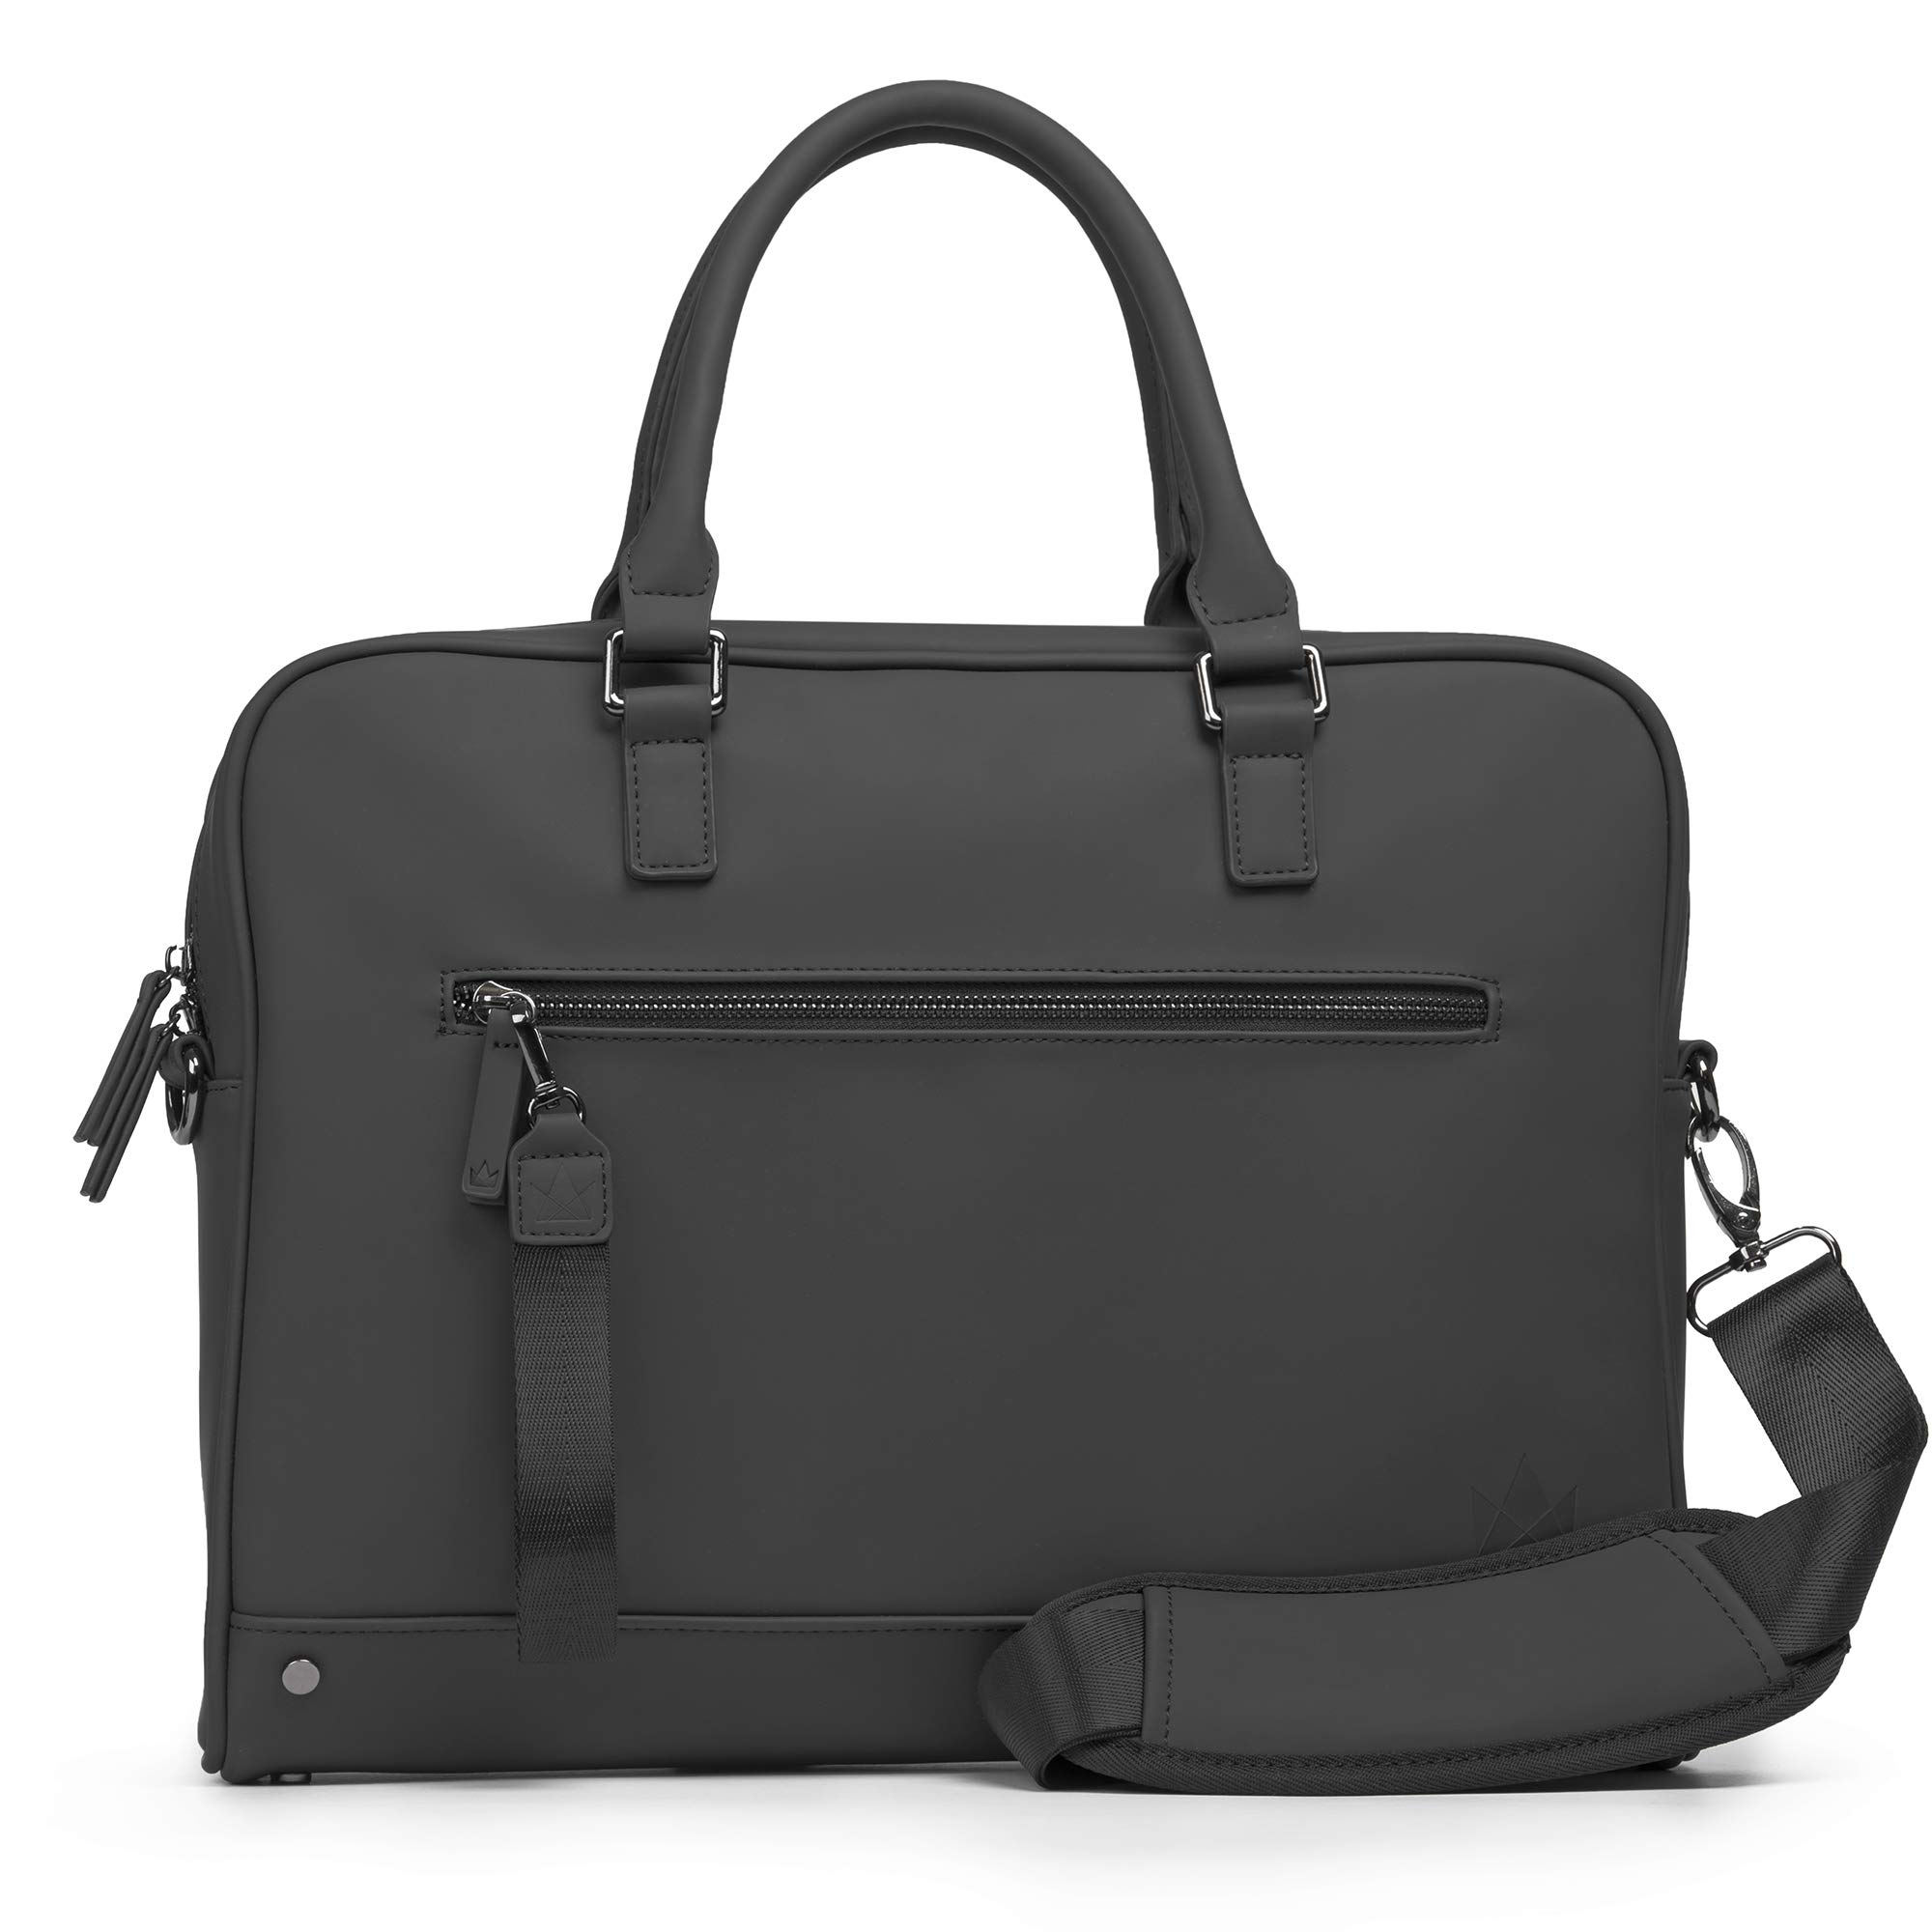 The Friendly Swede 13 inch Slim Laptop Bag for Women and Men - Shoulder Strap, Minimalist Notebook Executive Computer Case Business Briefcase, Vegan PU - VRETA